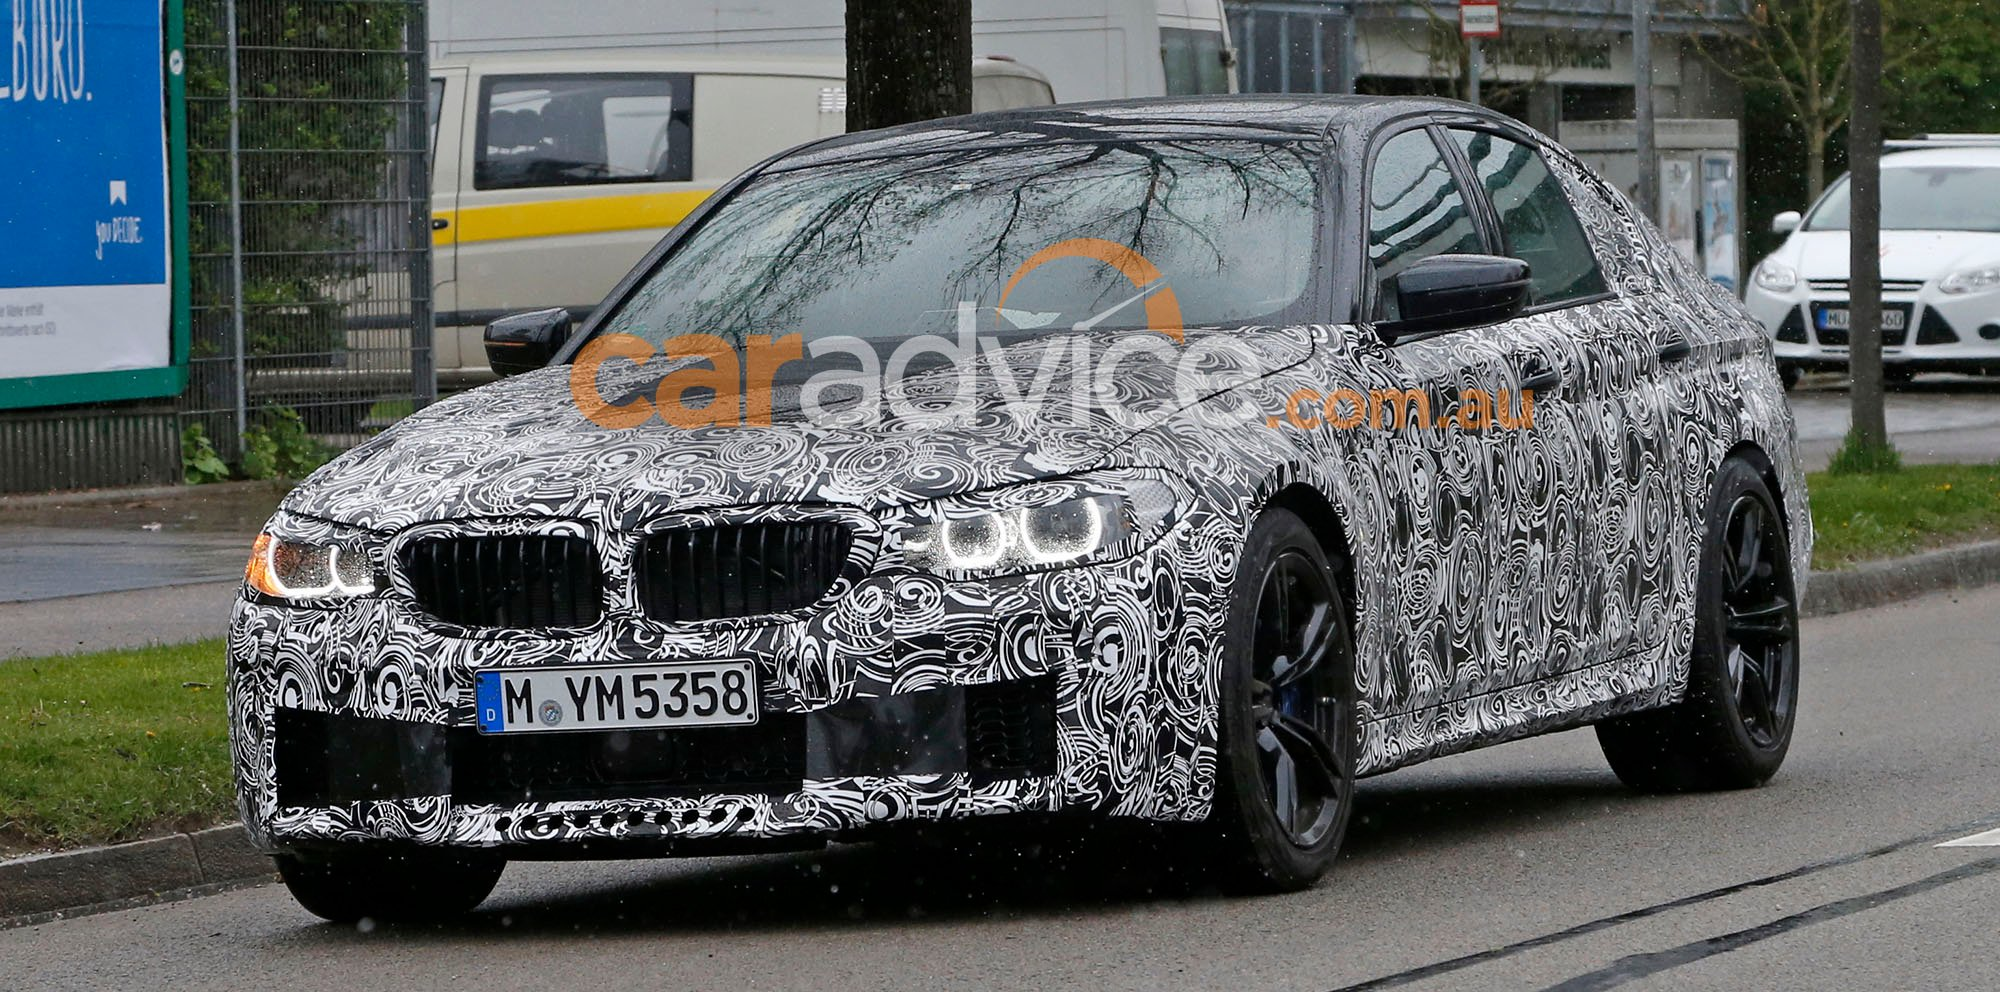 Bmw m5 sedan and 5 series wagon spied with less camouflage